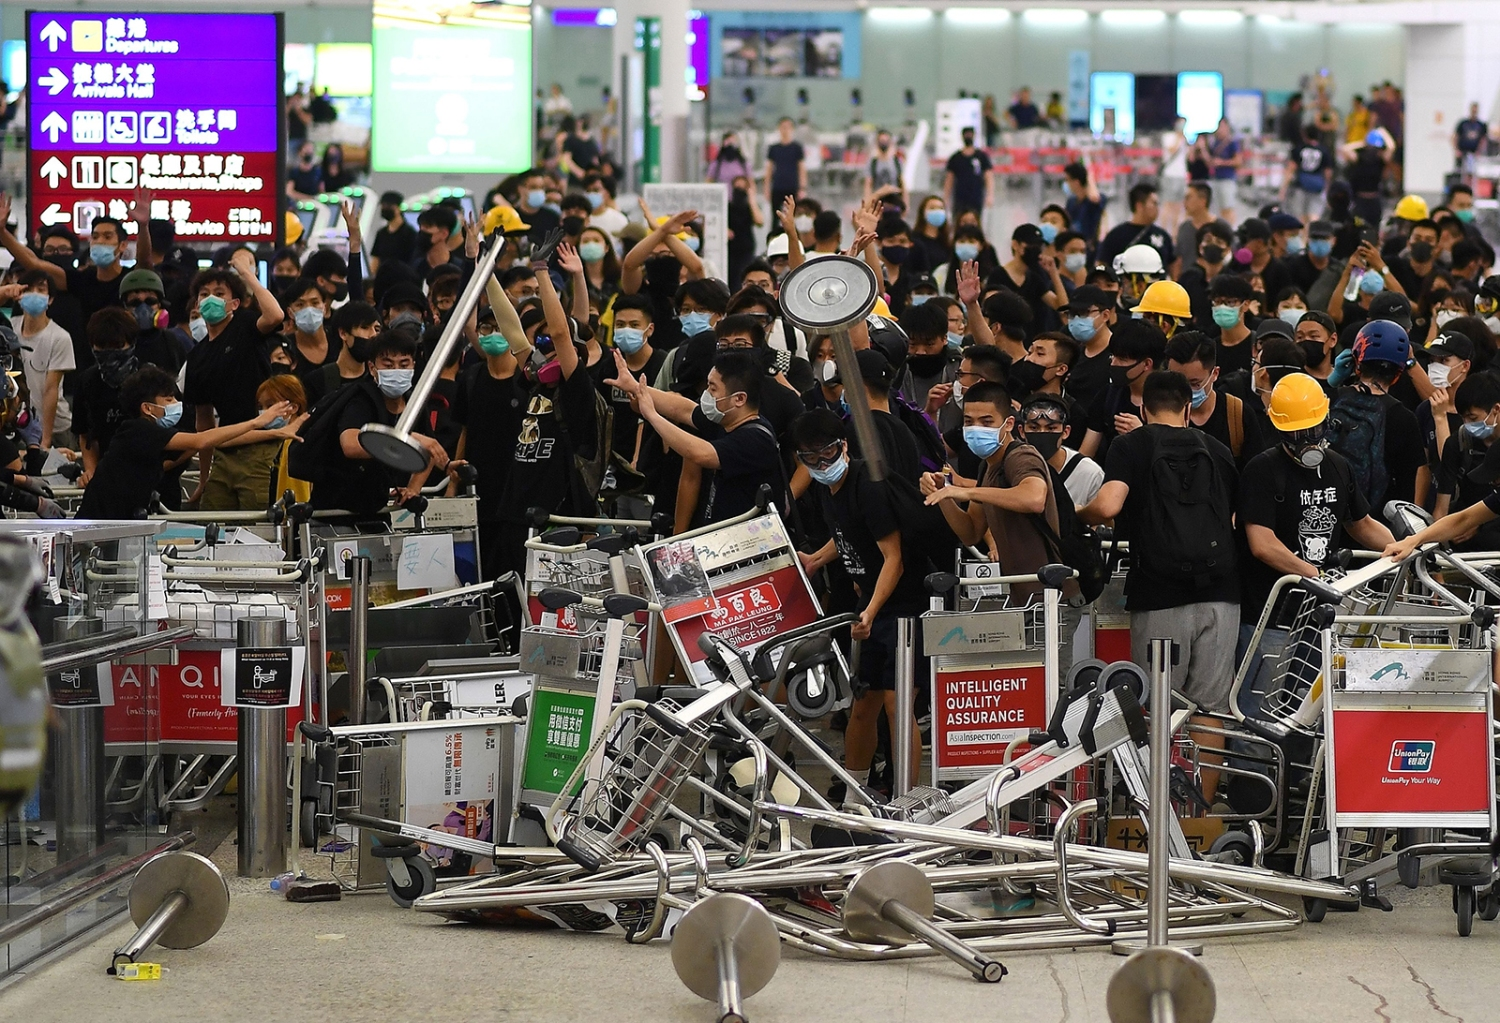 Pro-democracy protesters block the entrance to terminals after a confrontation with police at Hong Kong's International Airport on Aug. 13. MANAN VATSYAYANA/AFP/Getty Images